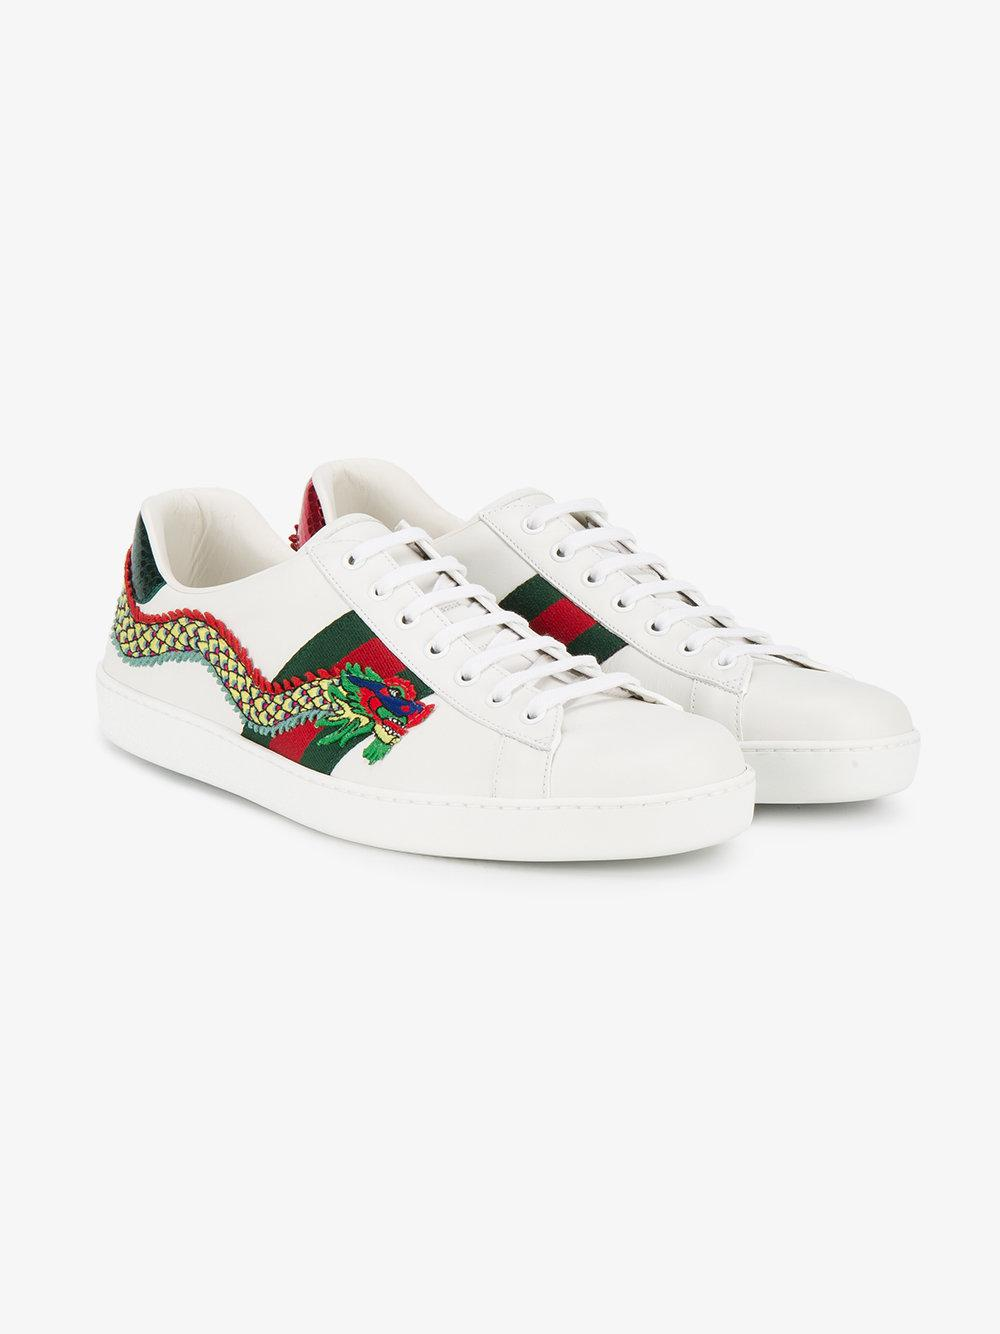 b2a8a5c03be Lyst - Gucci Dragon Embroidered Ace Sneakers in White for Men